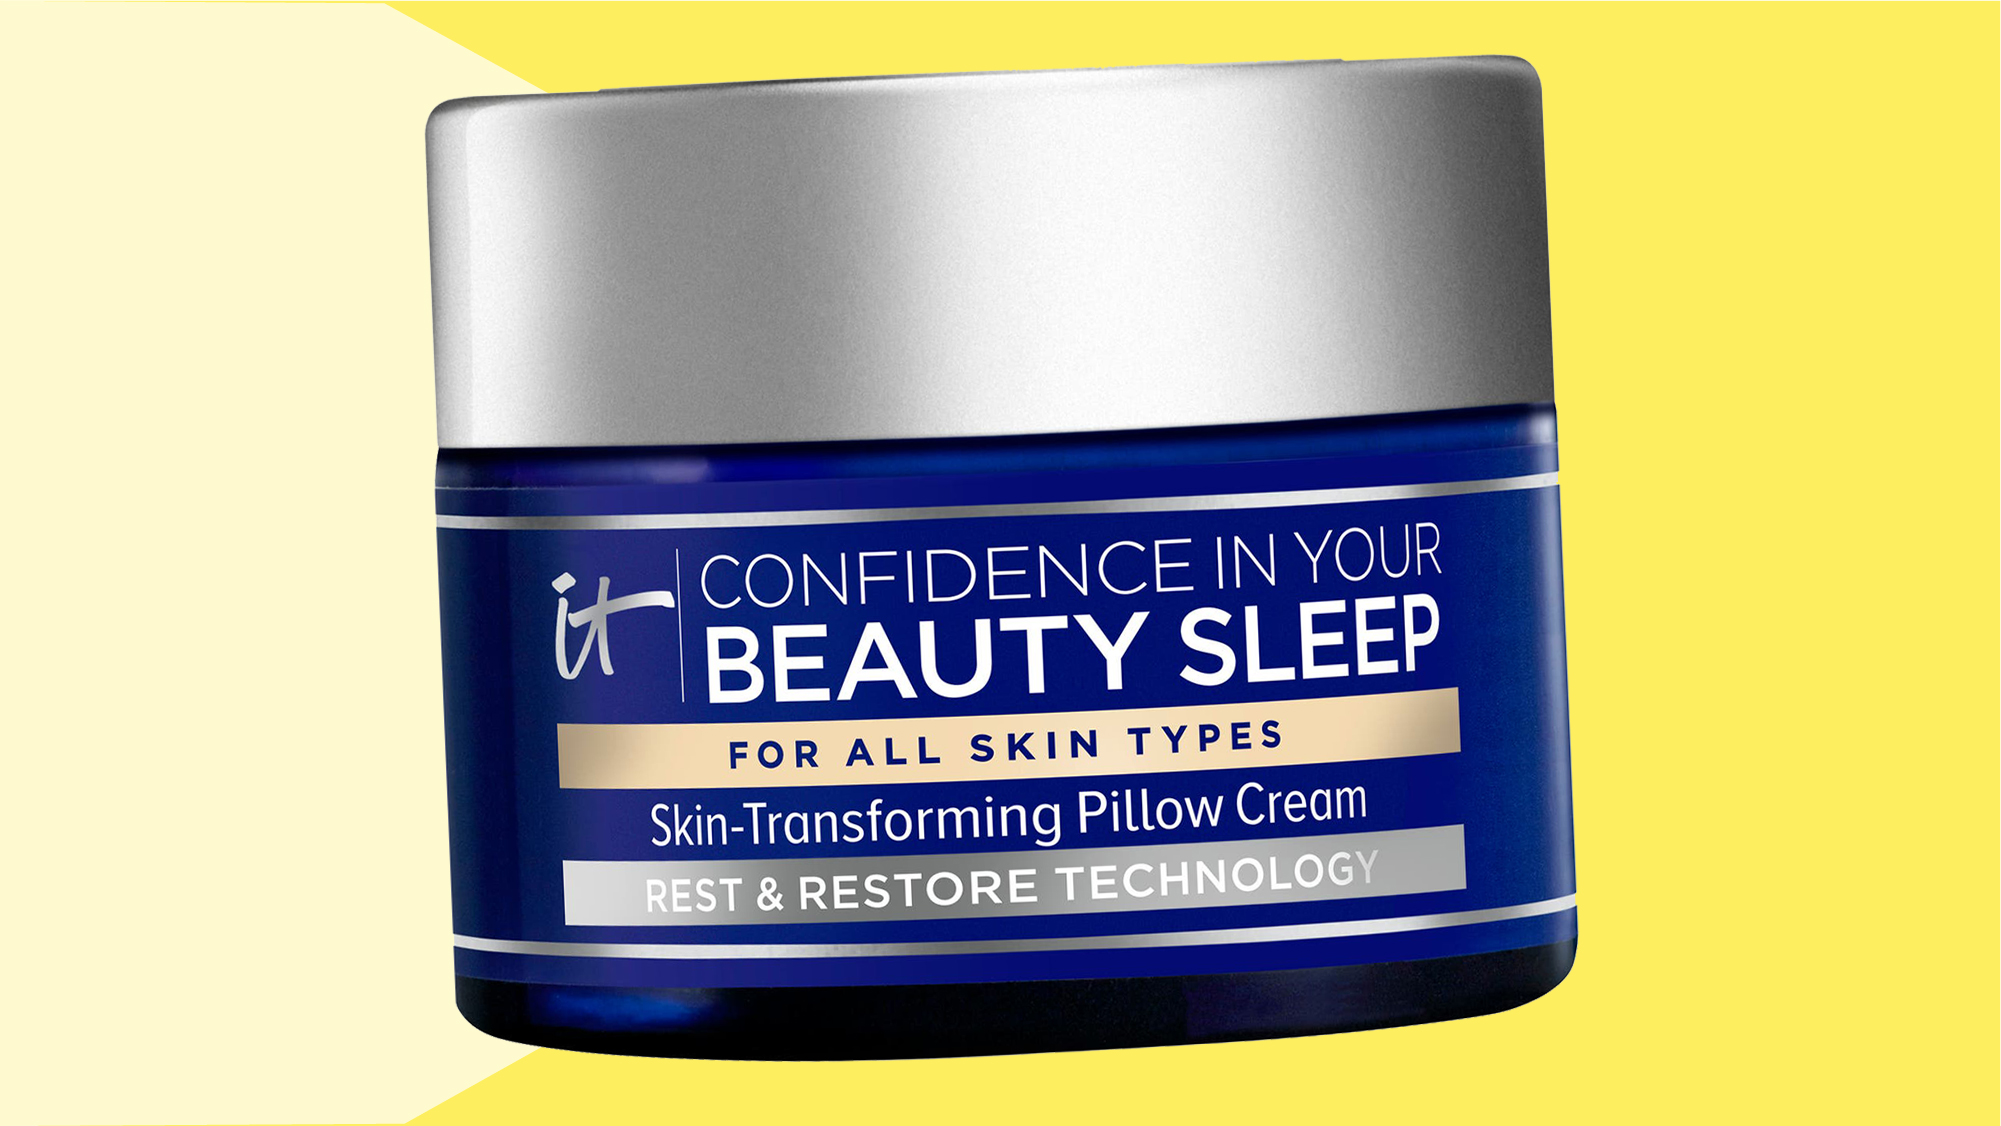 Confidence in Your Beauty Sleep Skin Transforming Pillow Cream IT COSMETICS